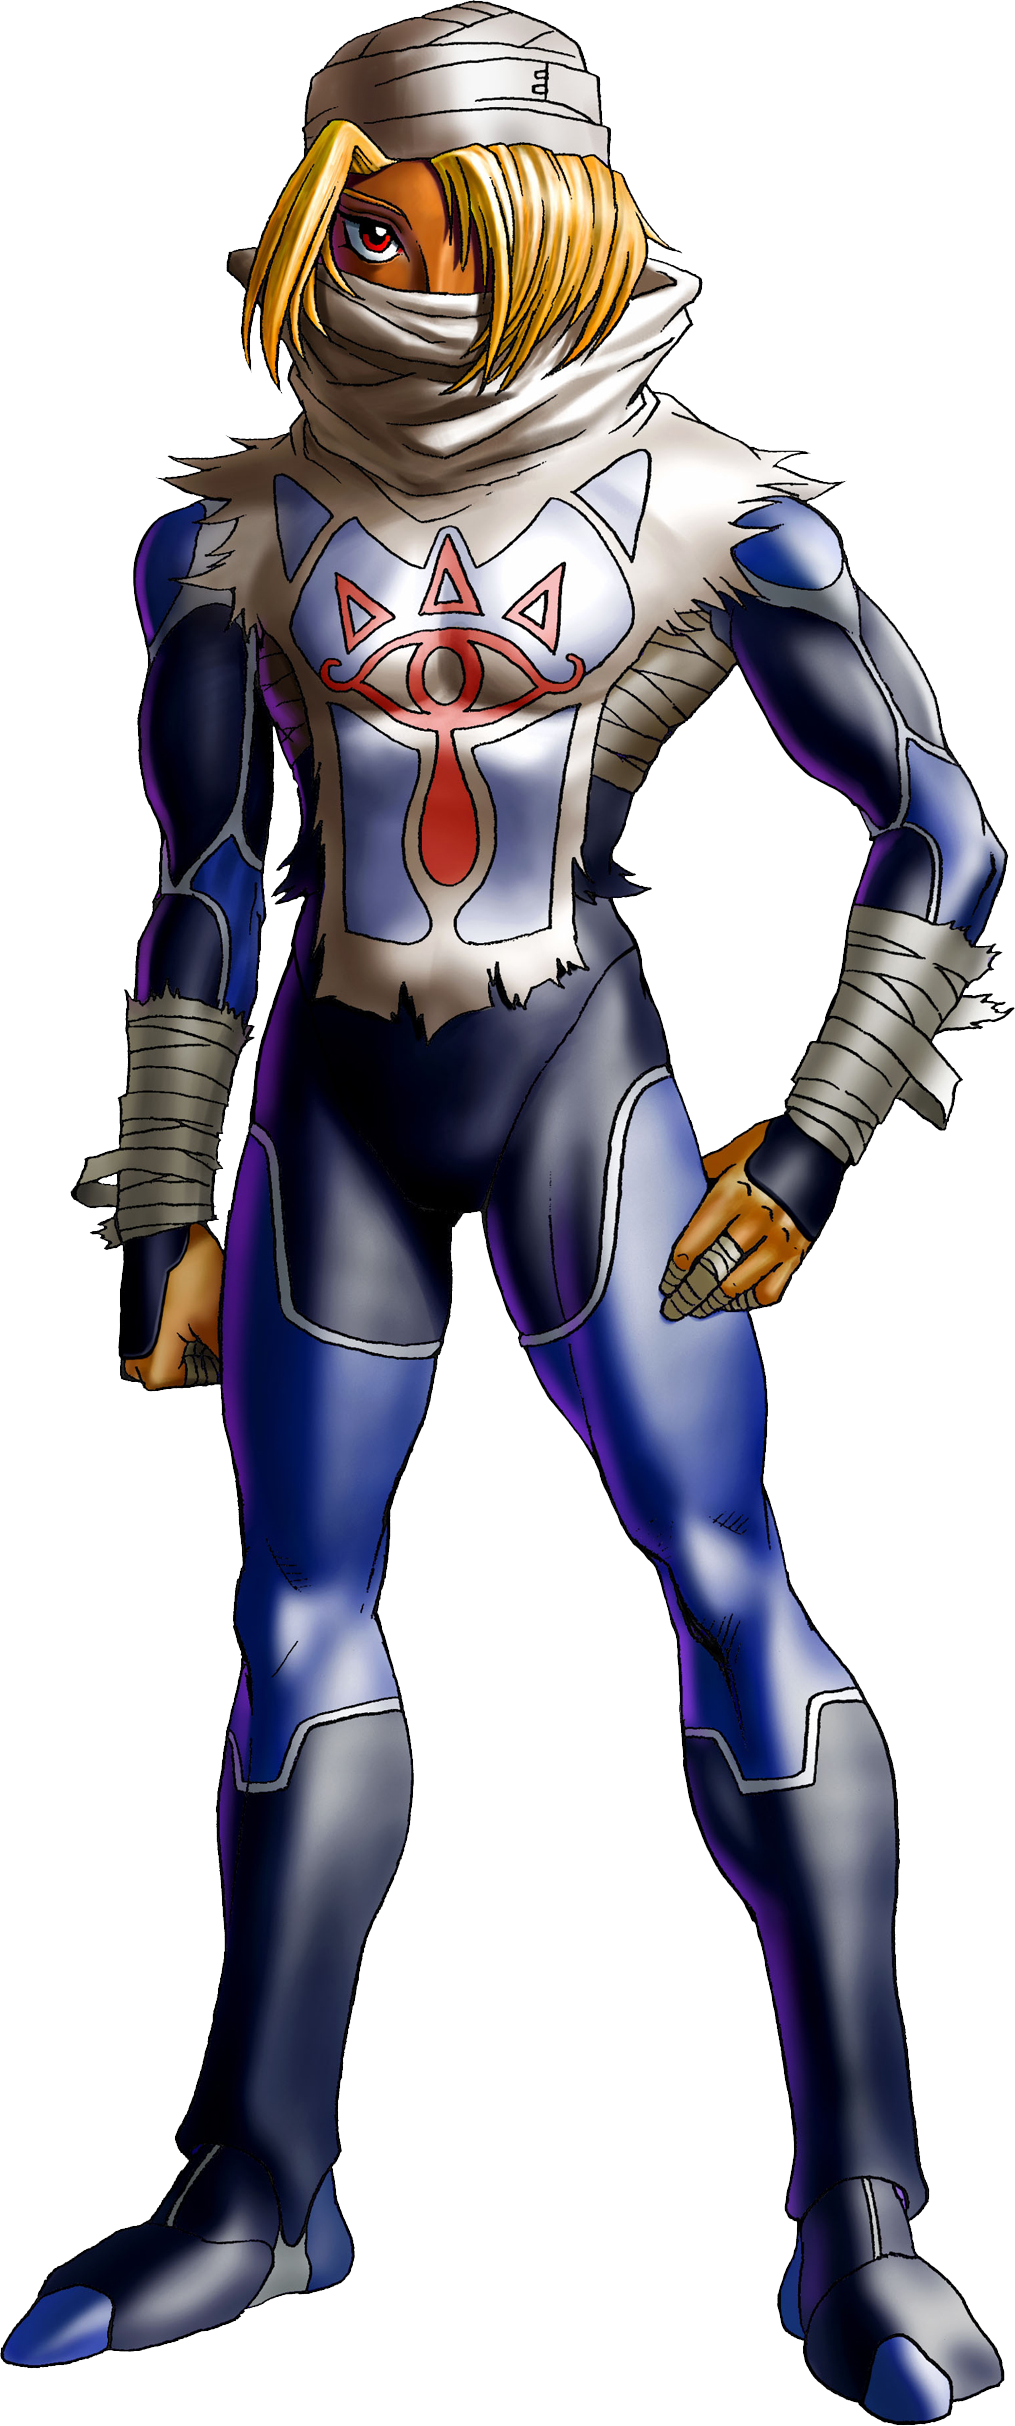 Avenger drawing gipsy. Image sheik artwork png